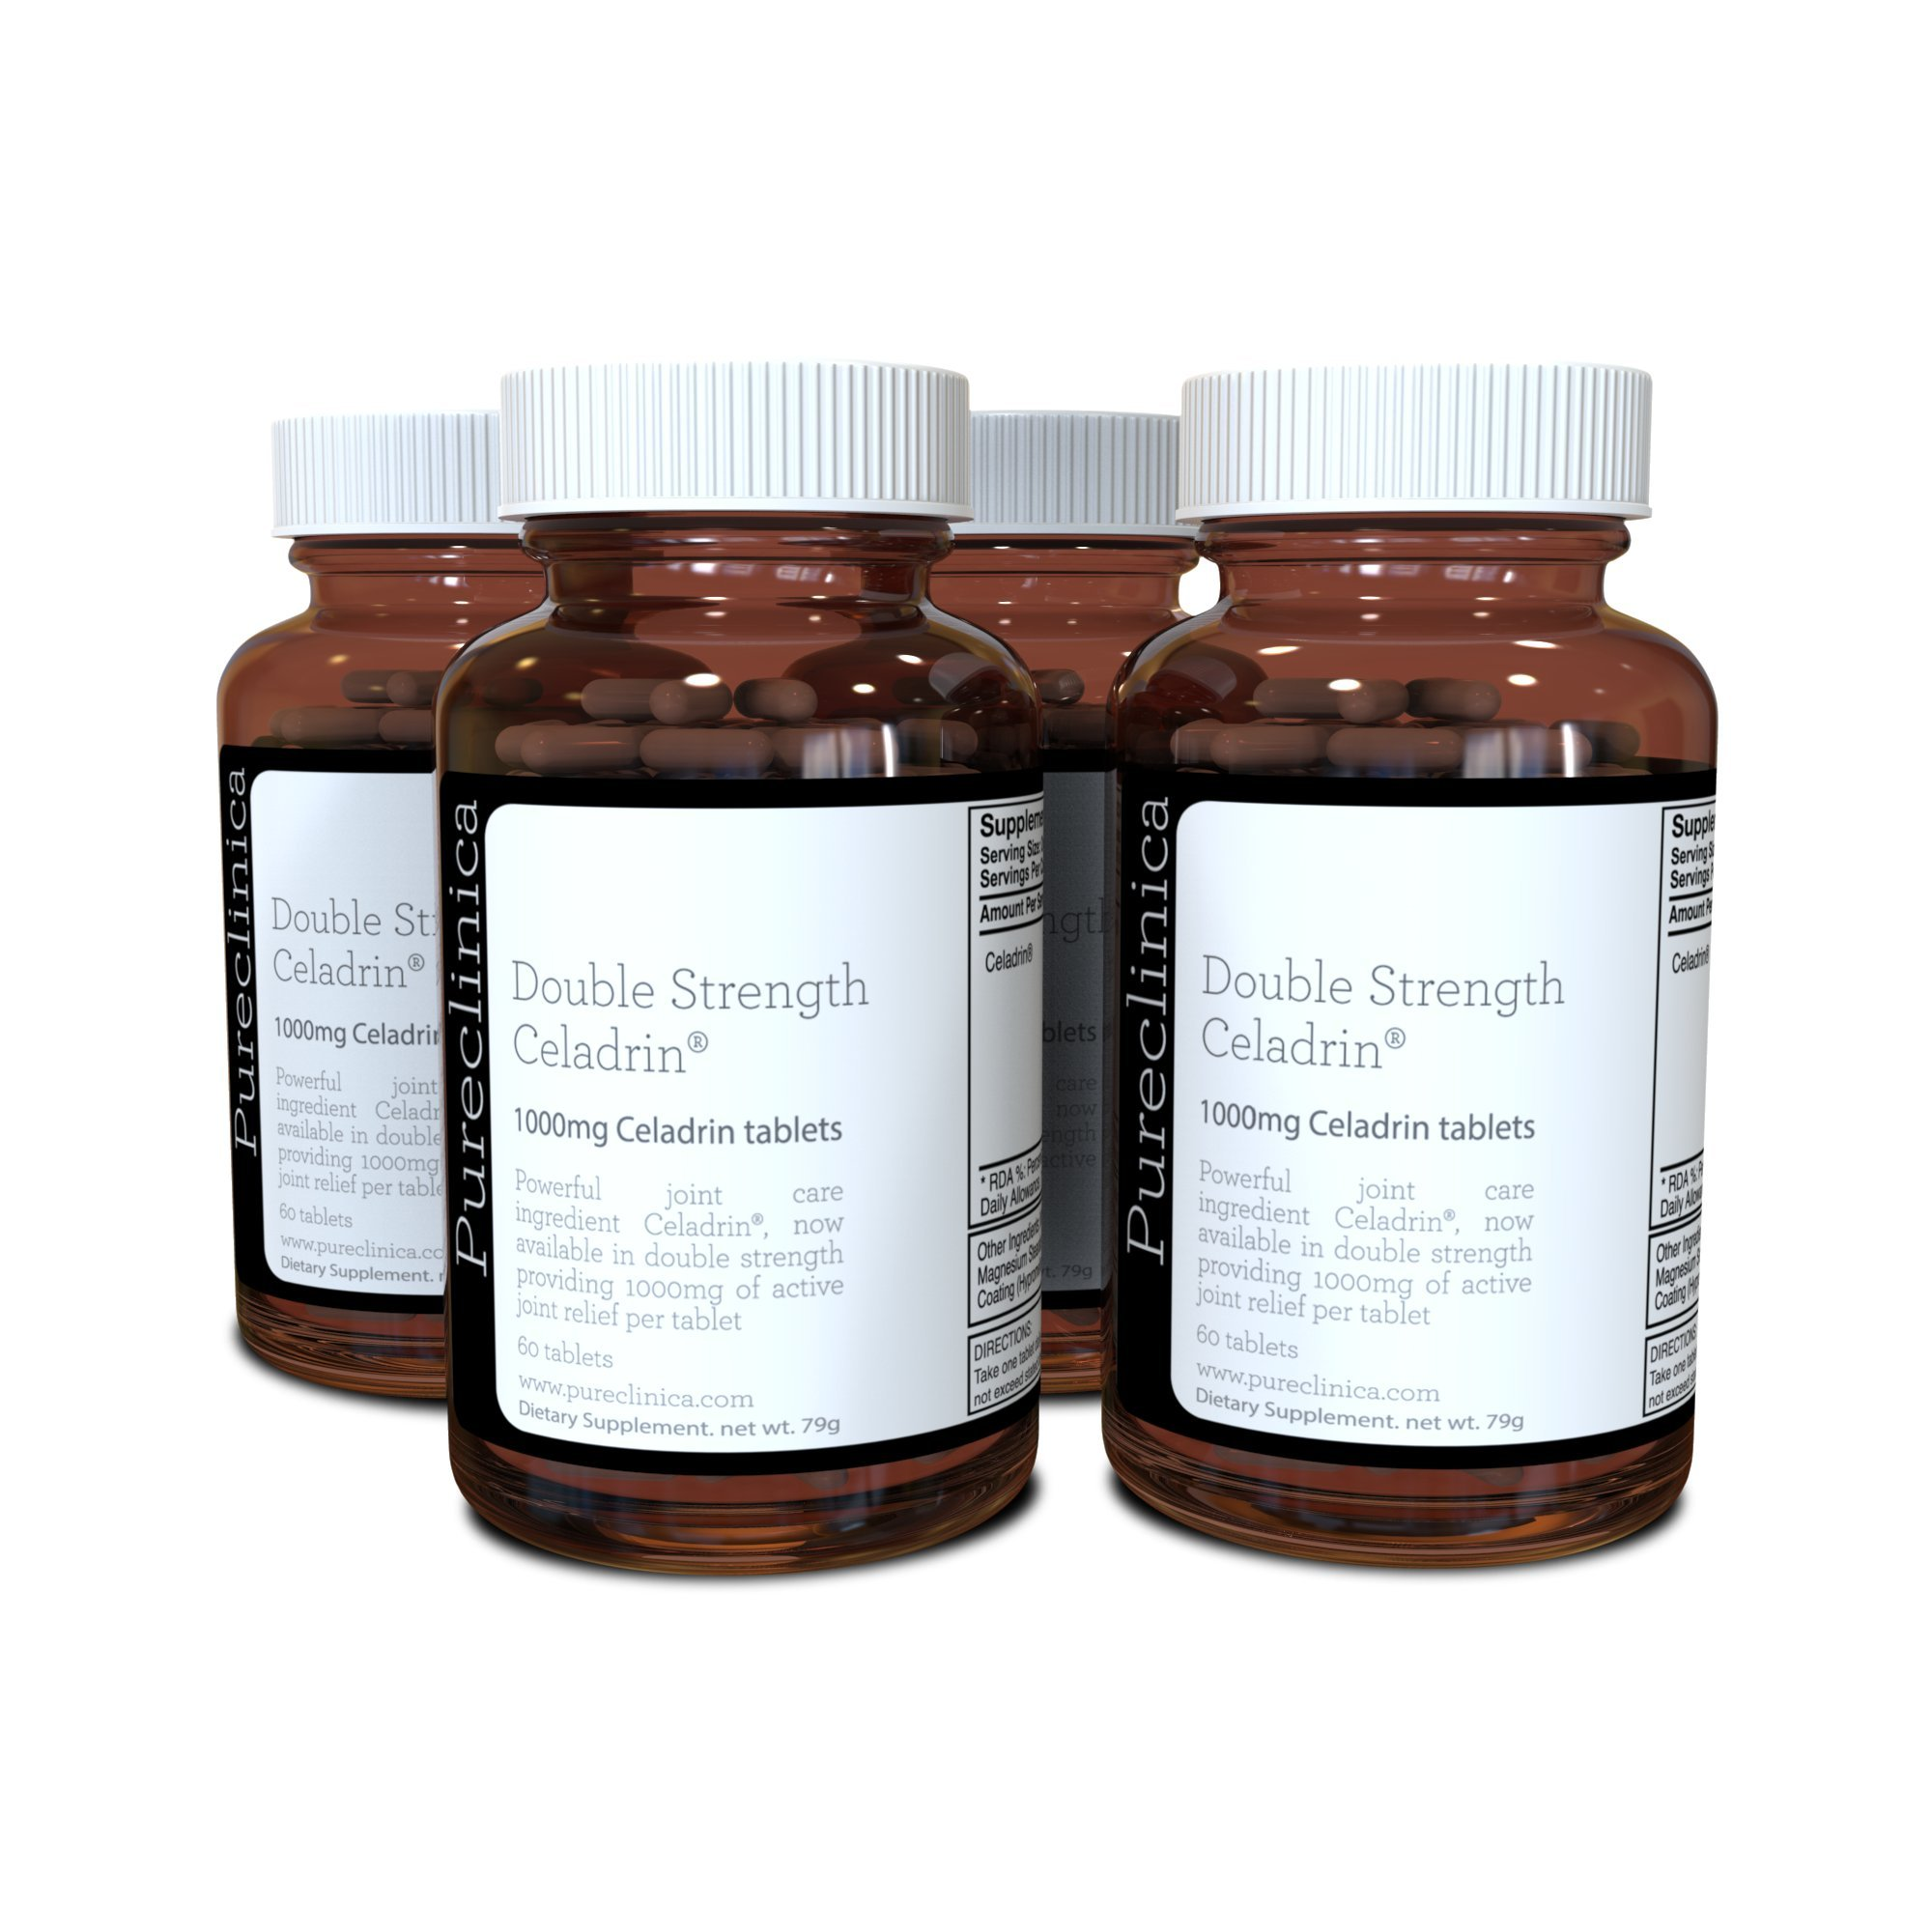 Double Strength Celadrin® - 8 Month Supply! (1000mg x 240 Tablets) 4 Bottles for a Specially Reduced Price! SKU: CEL3x4